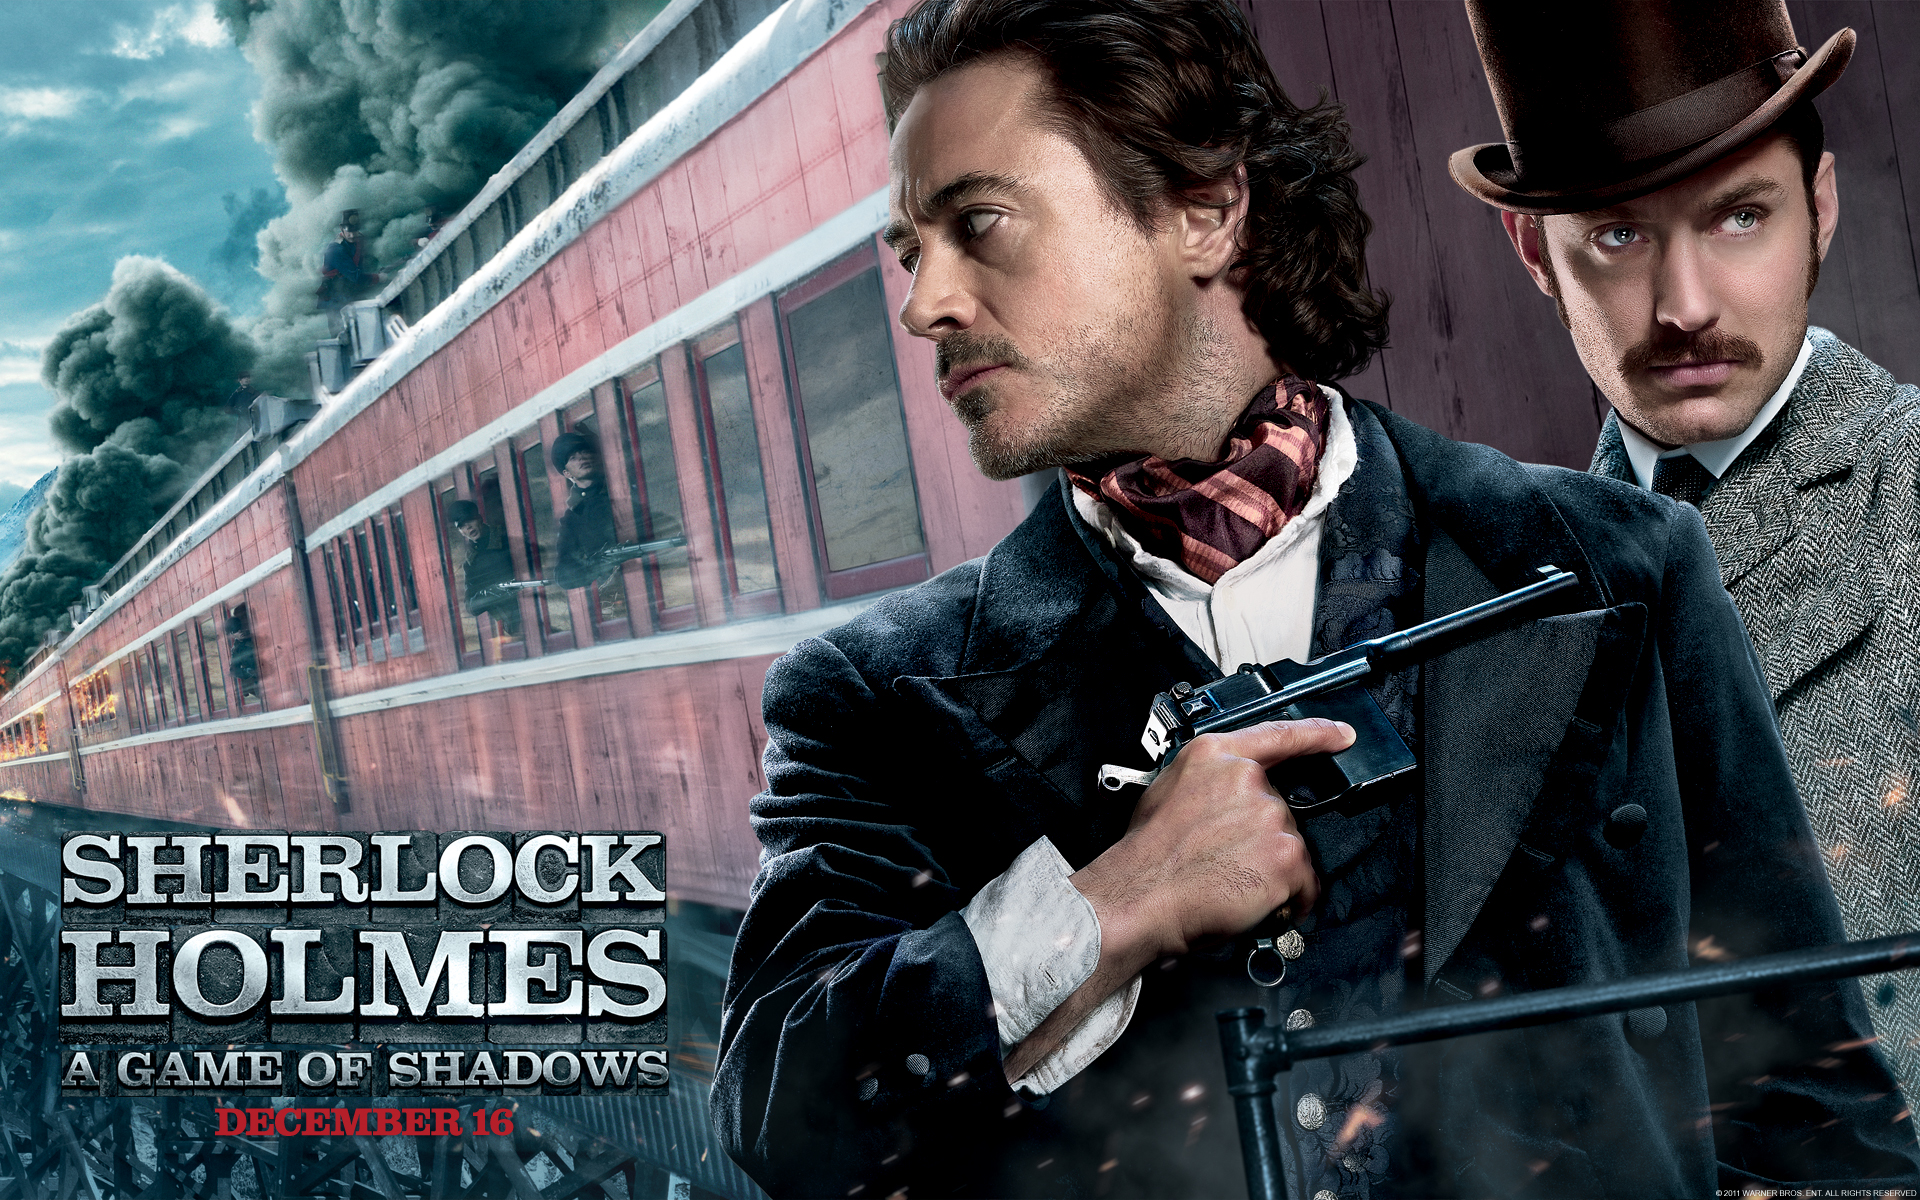 Sherlock Holmes A Game Of Shadows Gets New Poster And Wallpaper